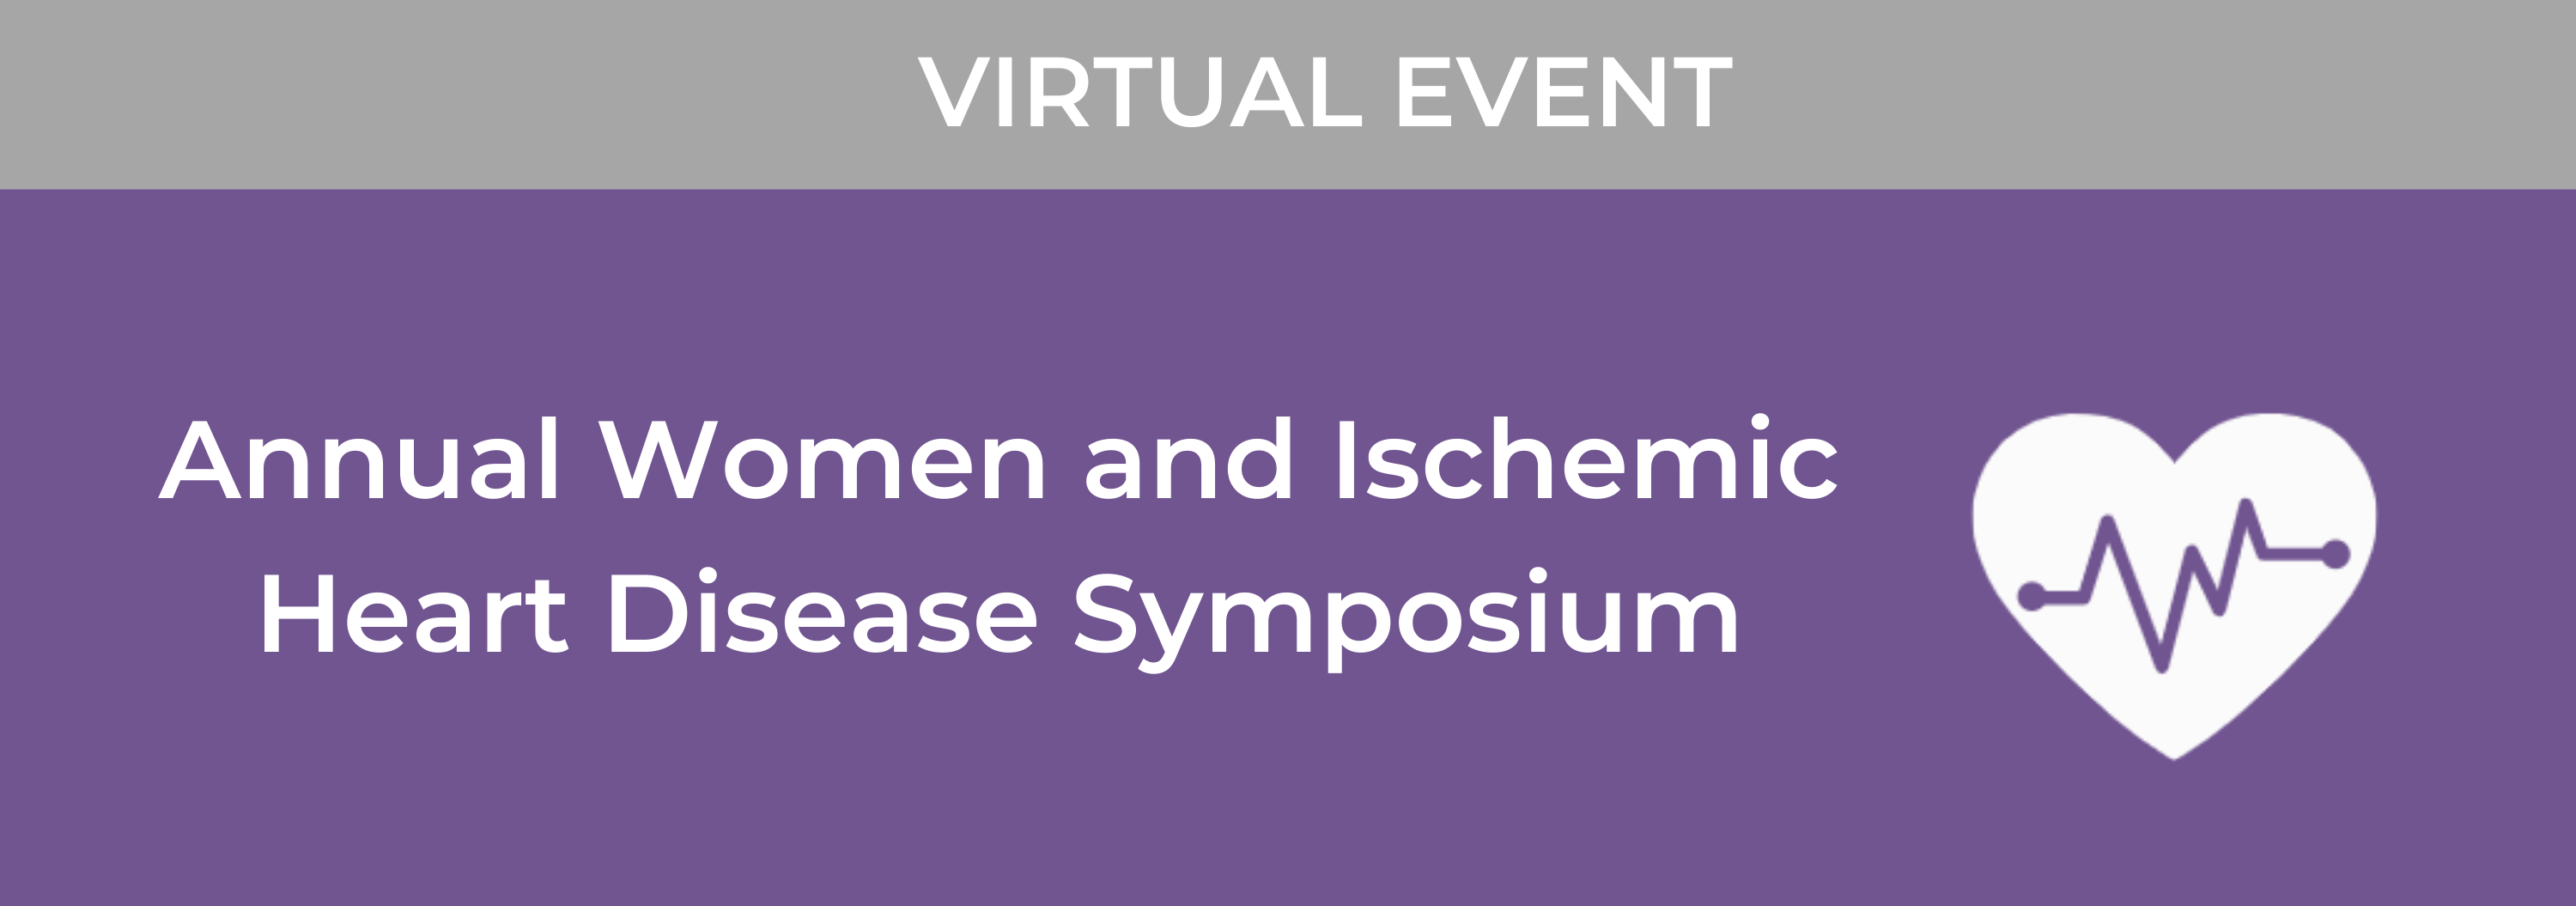 14th Annual Women and Ischemic Heart Disease Symposium Banner